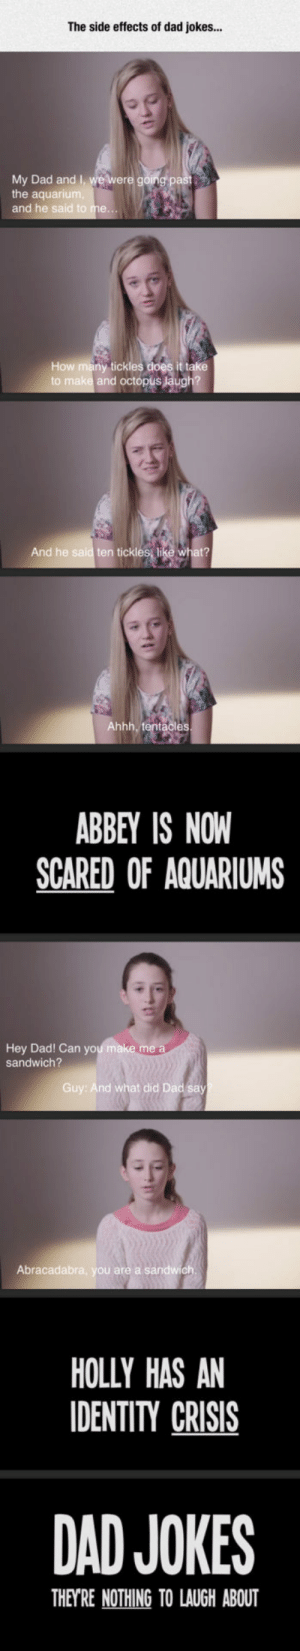 Dad, Tumblr, and Blog: The side effects of dad jokes...  My Dad and I we were going pe  the aquariu  and he said  How many tickles  it take  and octópus  And he said ten tickles like what?  Ahhh,t  es  ABBEY IS NOW  SCARED OF AQUARIUMS  Hey Dad! Can you ma  sandwich?  Guy: And what did Dad say  Abracadabra, you are a sandwich  HOLLY HAS AN  IDENTITY CRISIS  DAD JOKES  THEYRE NOTHING TO LAUGH ABOUT srsfunny:Dad Jokes Can Be Dangerous